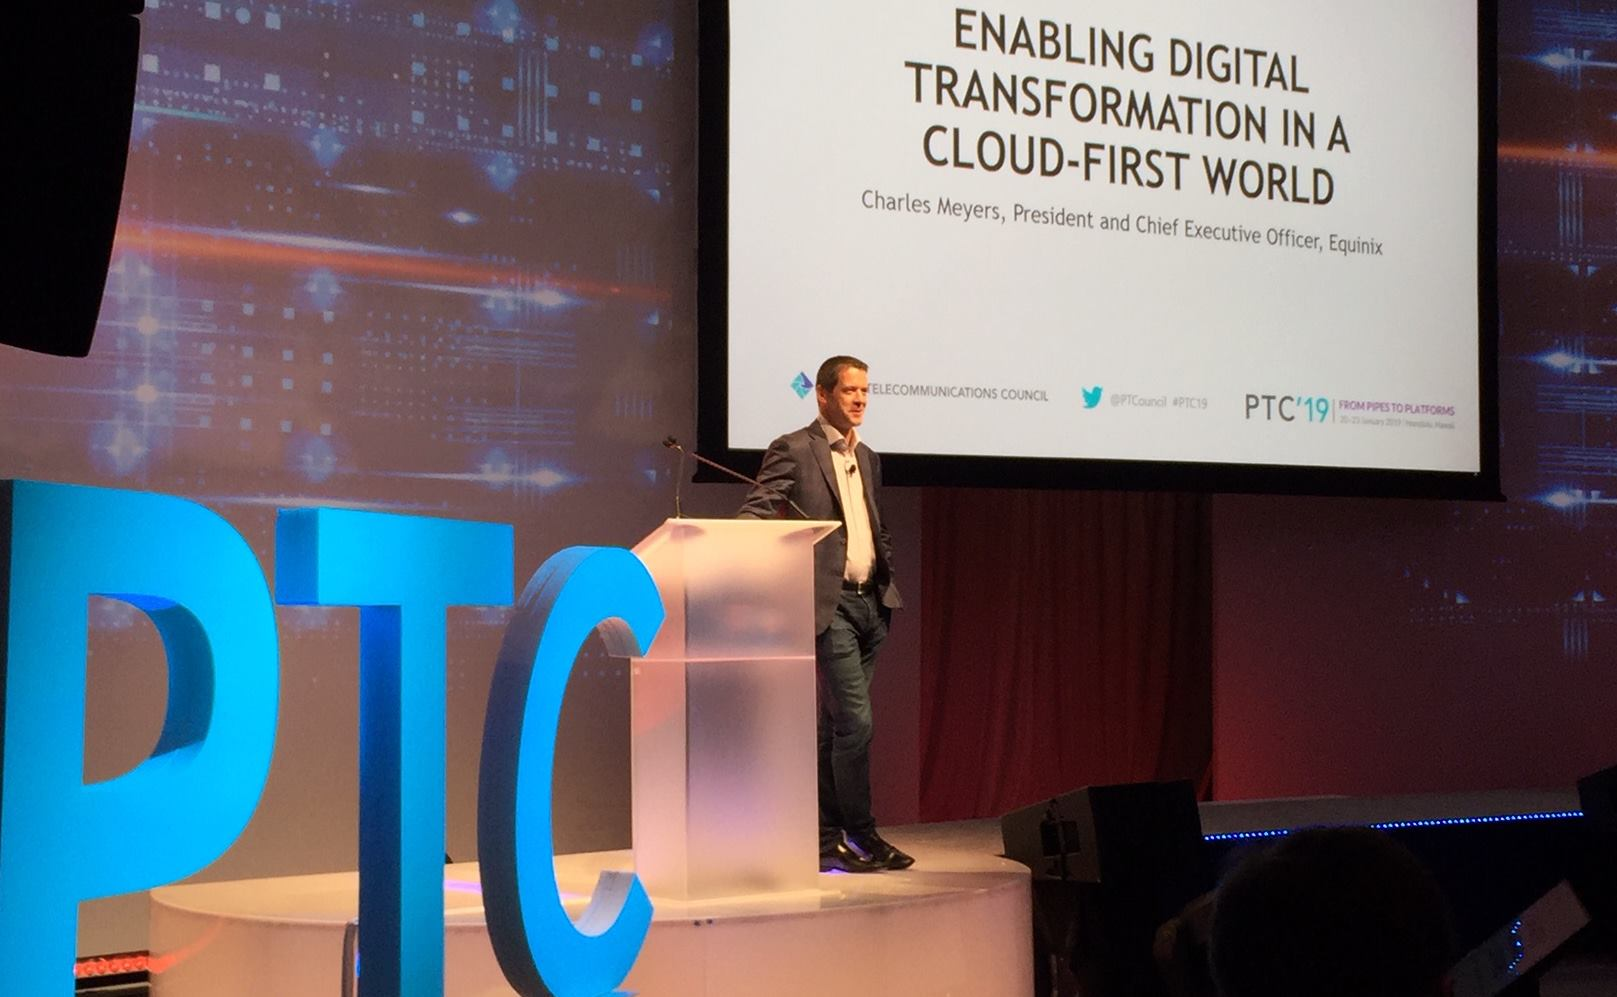 Equinix CEO Charles Meyers give talk on stage